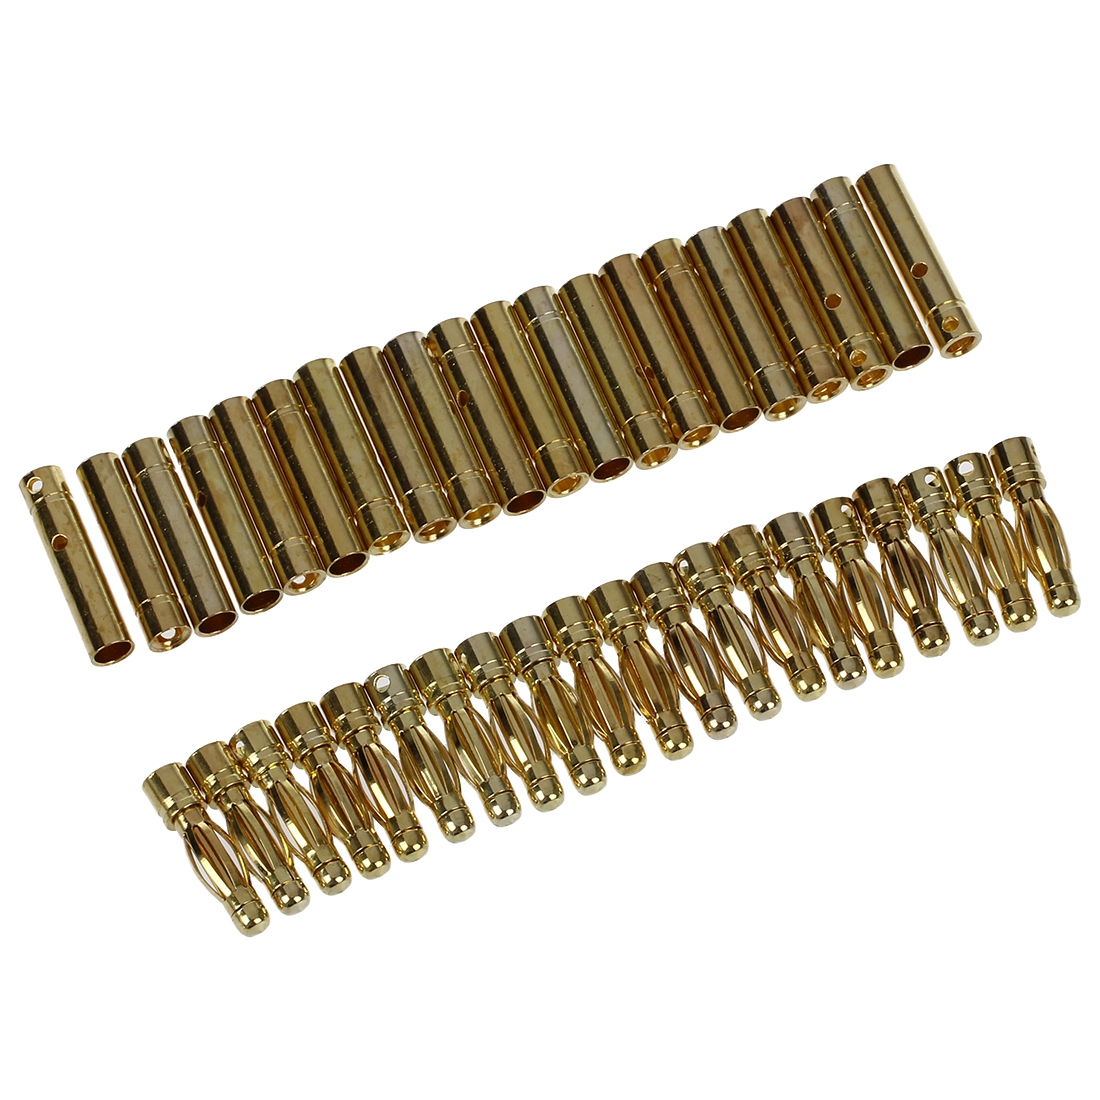 JFBL Hot sale New 20 Pairs Gold Tone Metal RC Banana Bullet Plug Connector Male Female 4mm areyourshop hot sale 50 pcs musical audio speaker cable wire 4mm gold plated banana plug connector